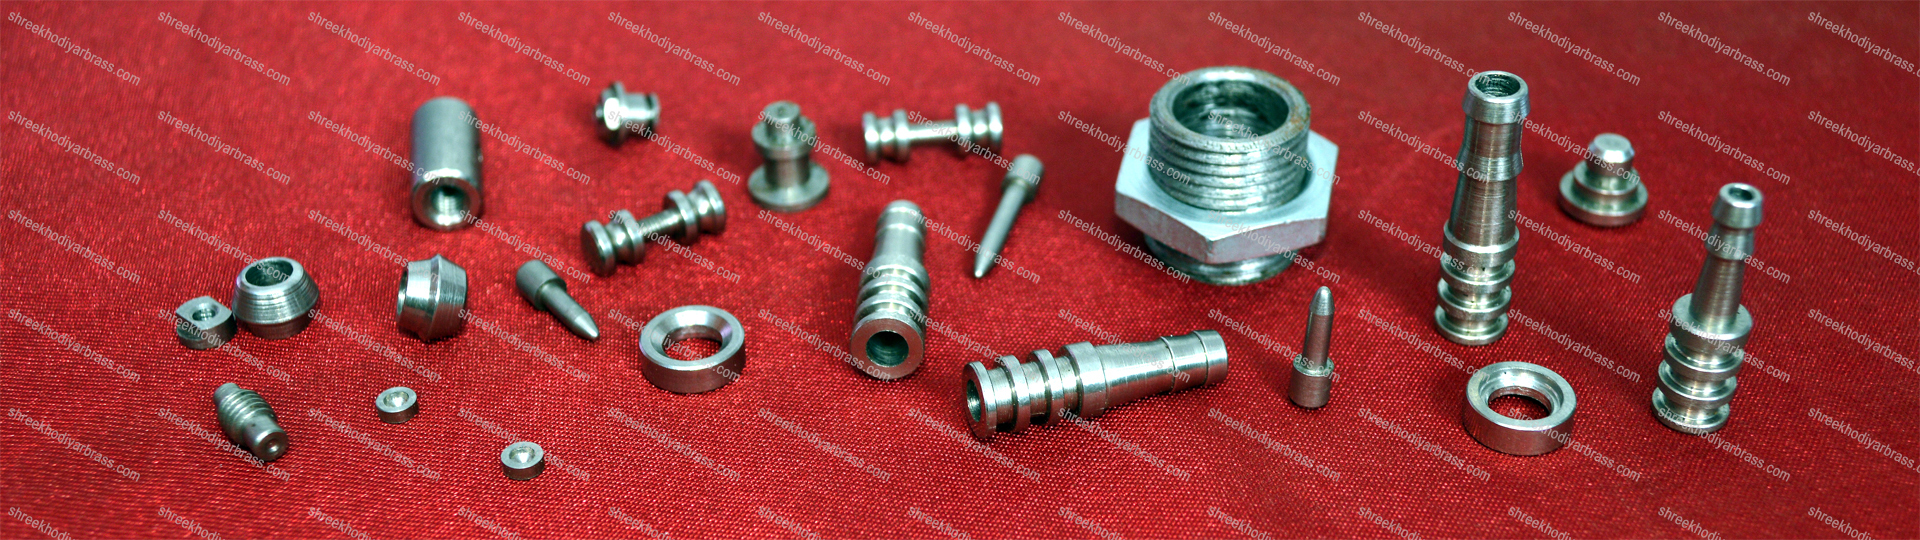 Manufacturer of all kinds of SS, Stainless steel components, Automobile Parts